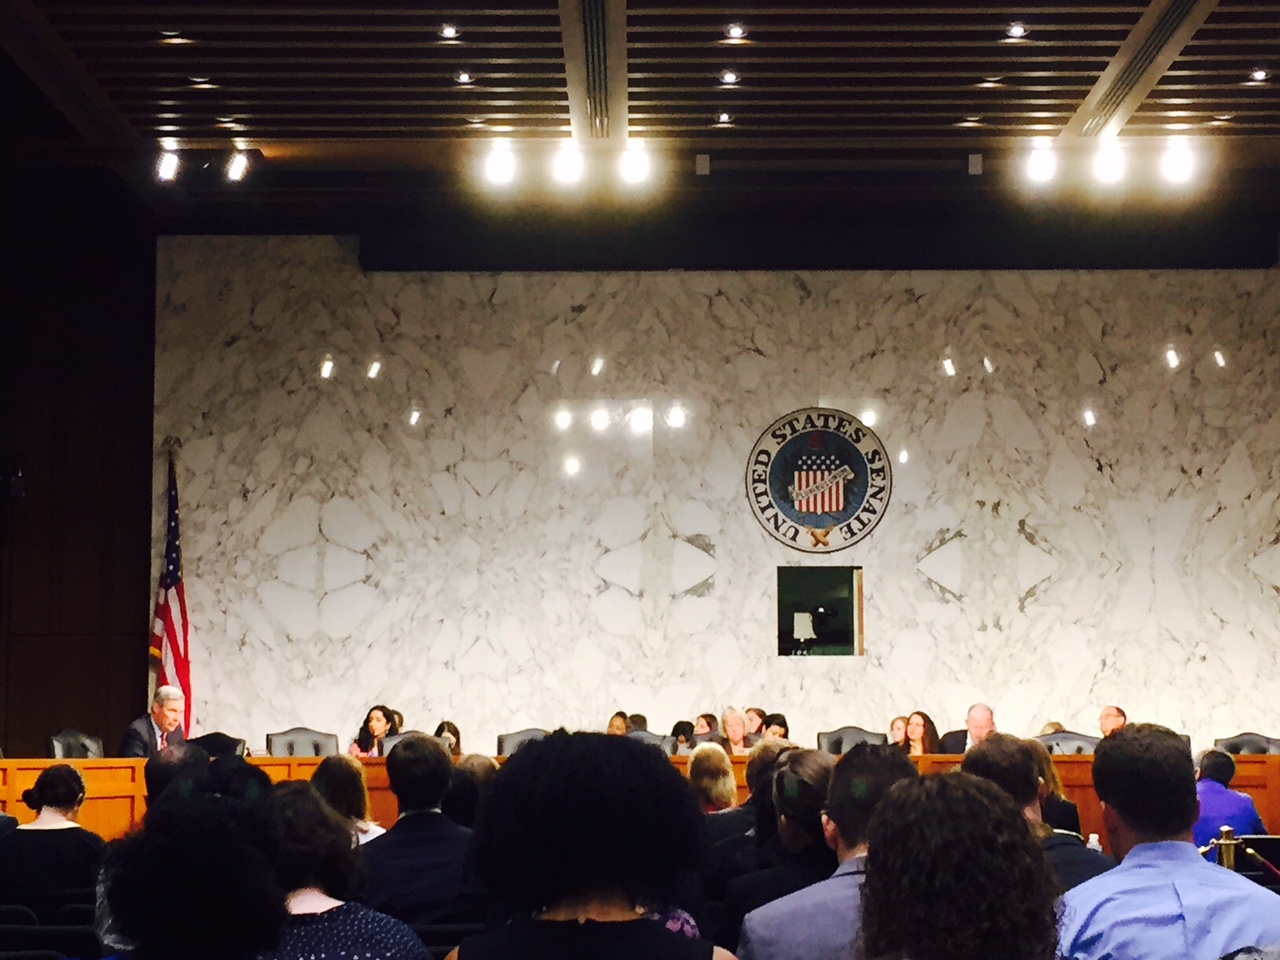 United States Senate emblem on a marble wall by an American flag in front of a large crowd